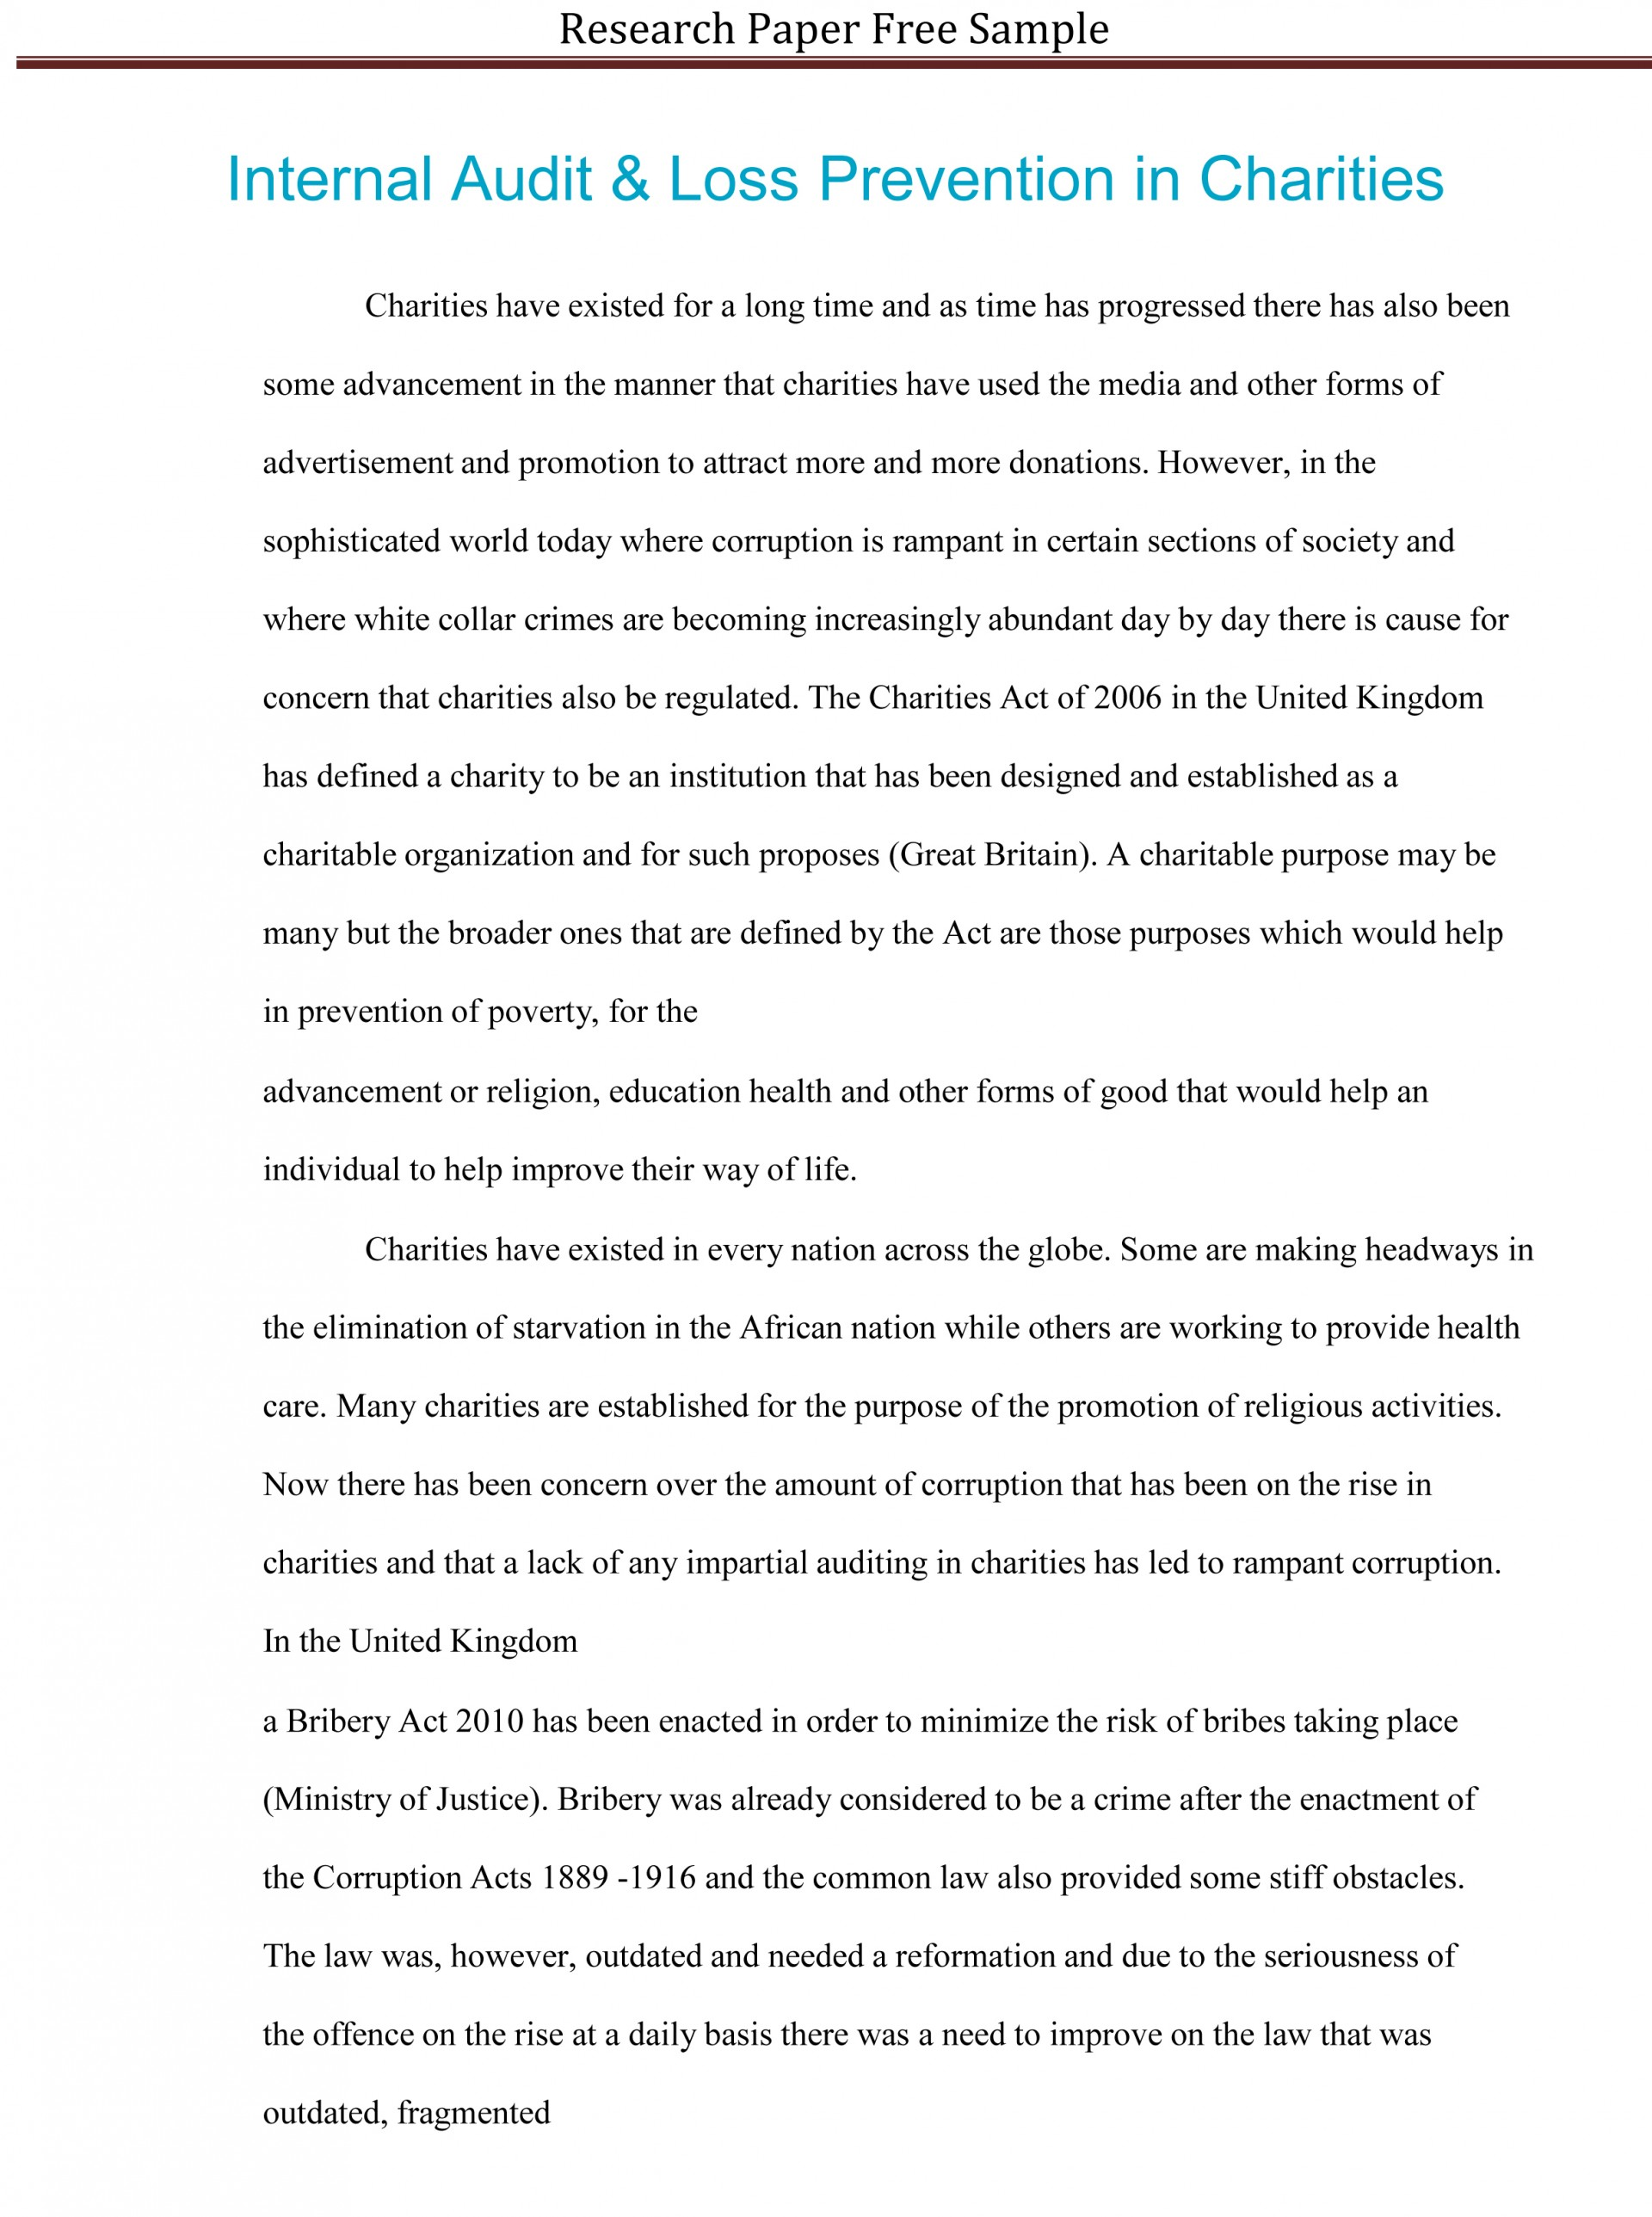 010 Writing An Introduction To Research Paper Help Paragraph Top A Effective For How Write Powerpoint Ppt 1920